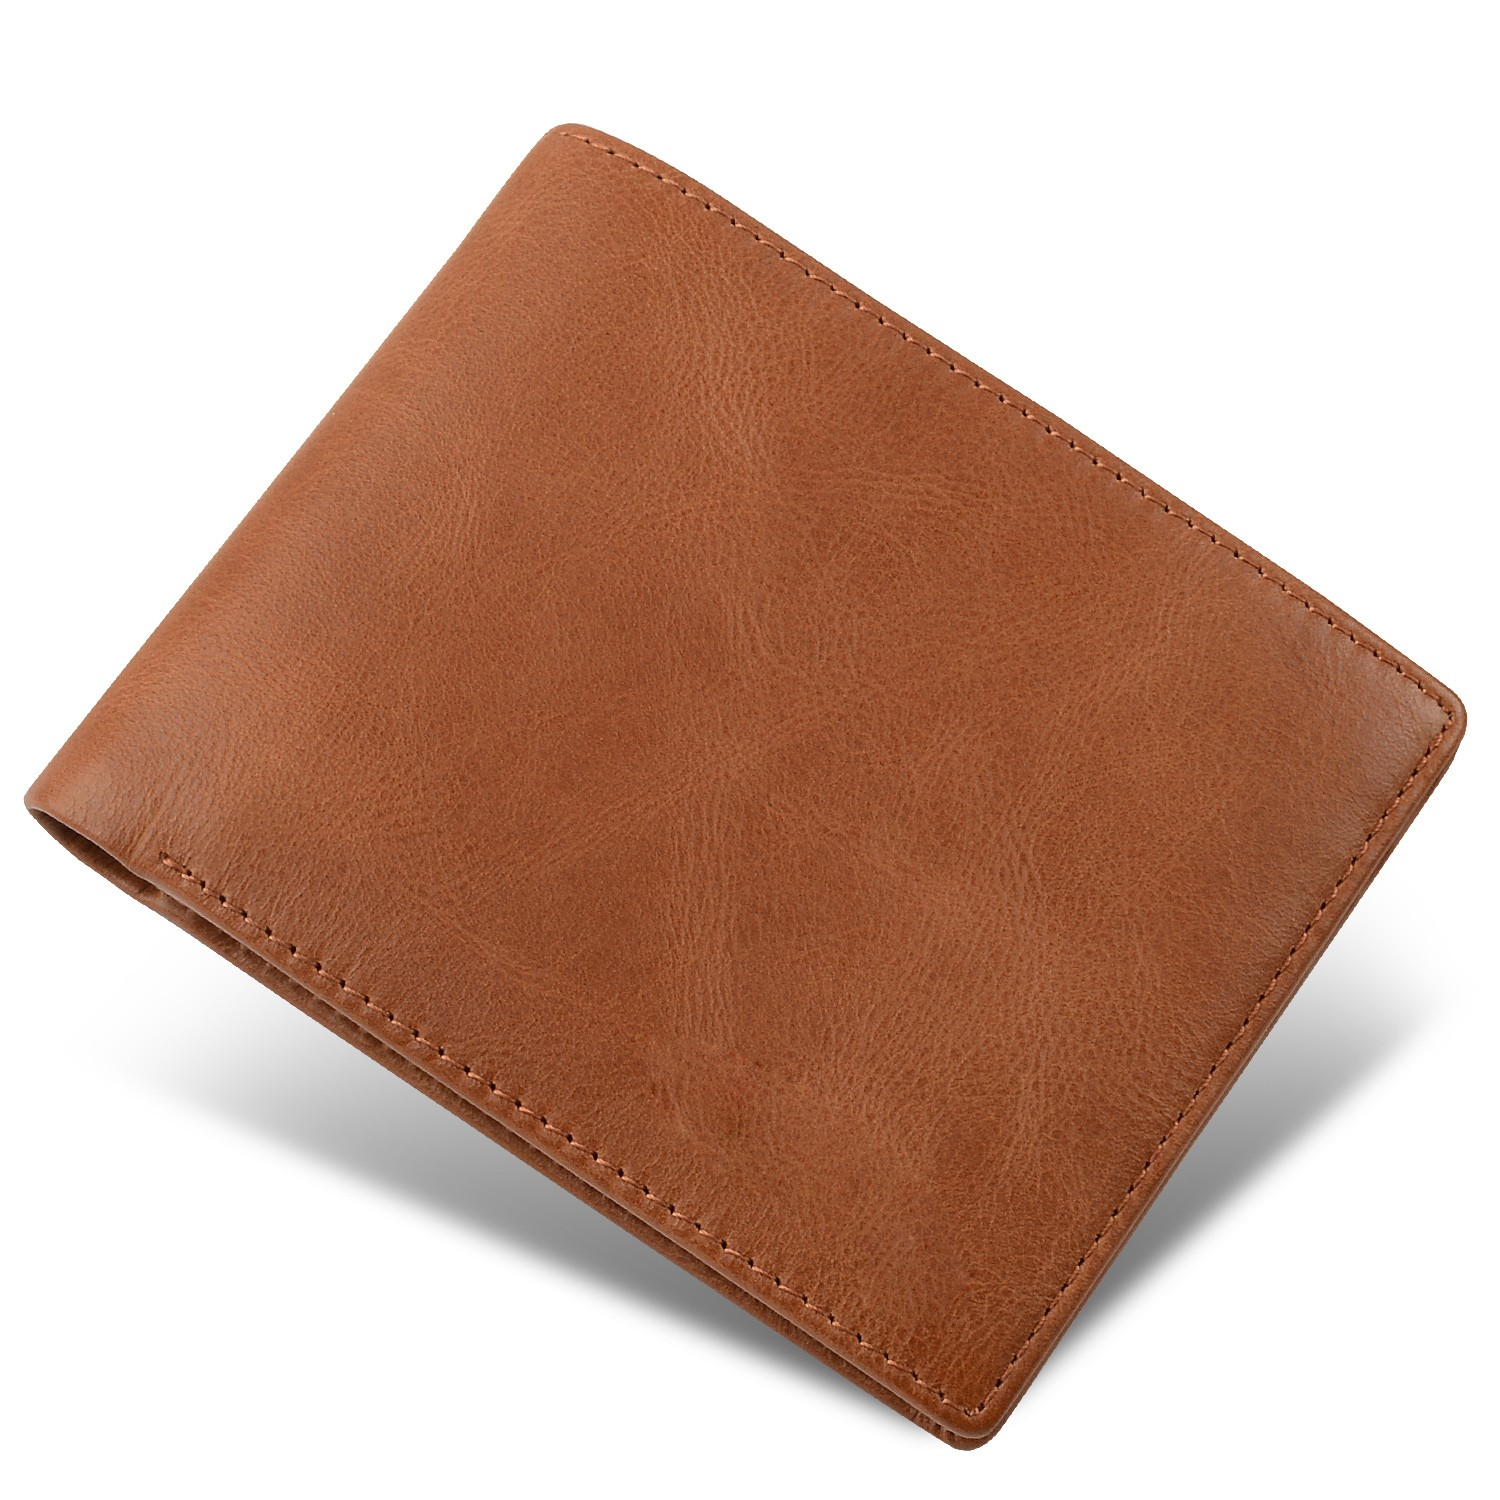 leather travel wallet large capacity for men-2